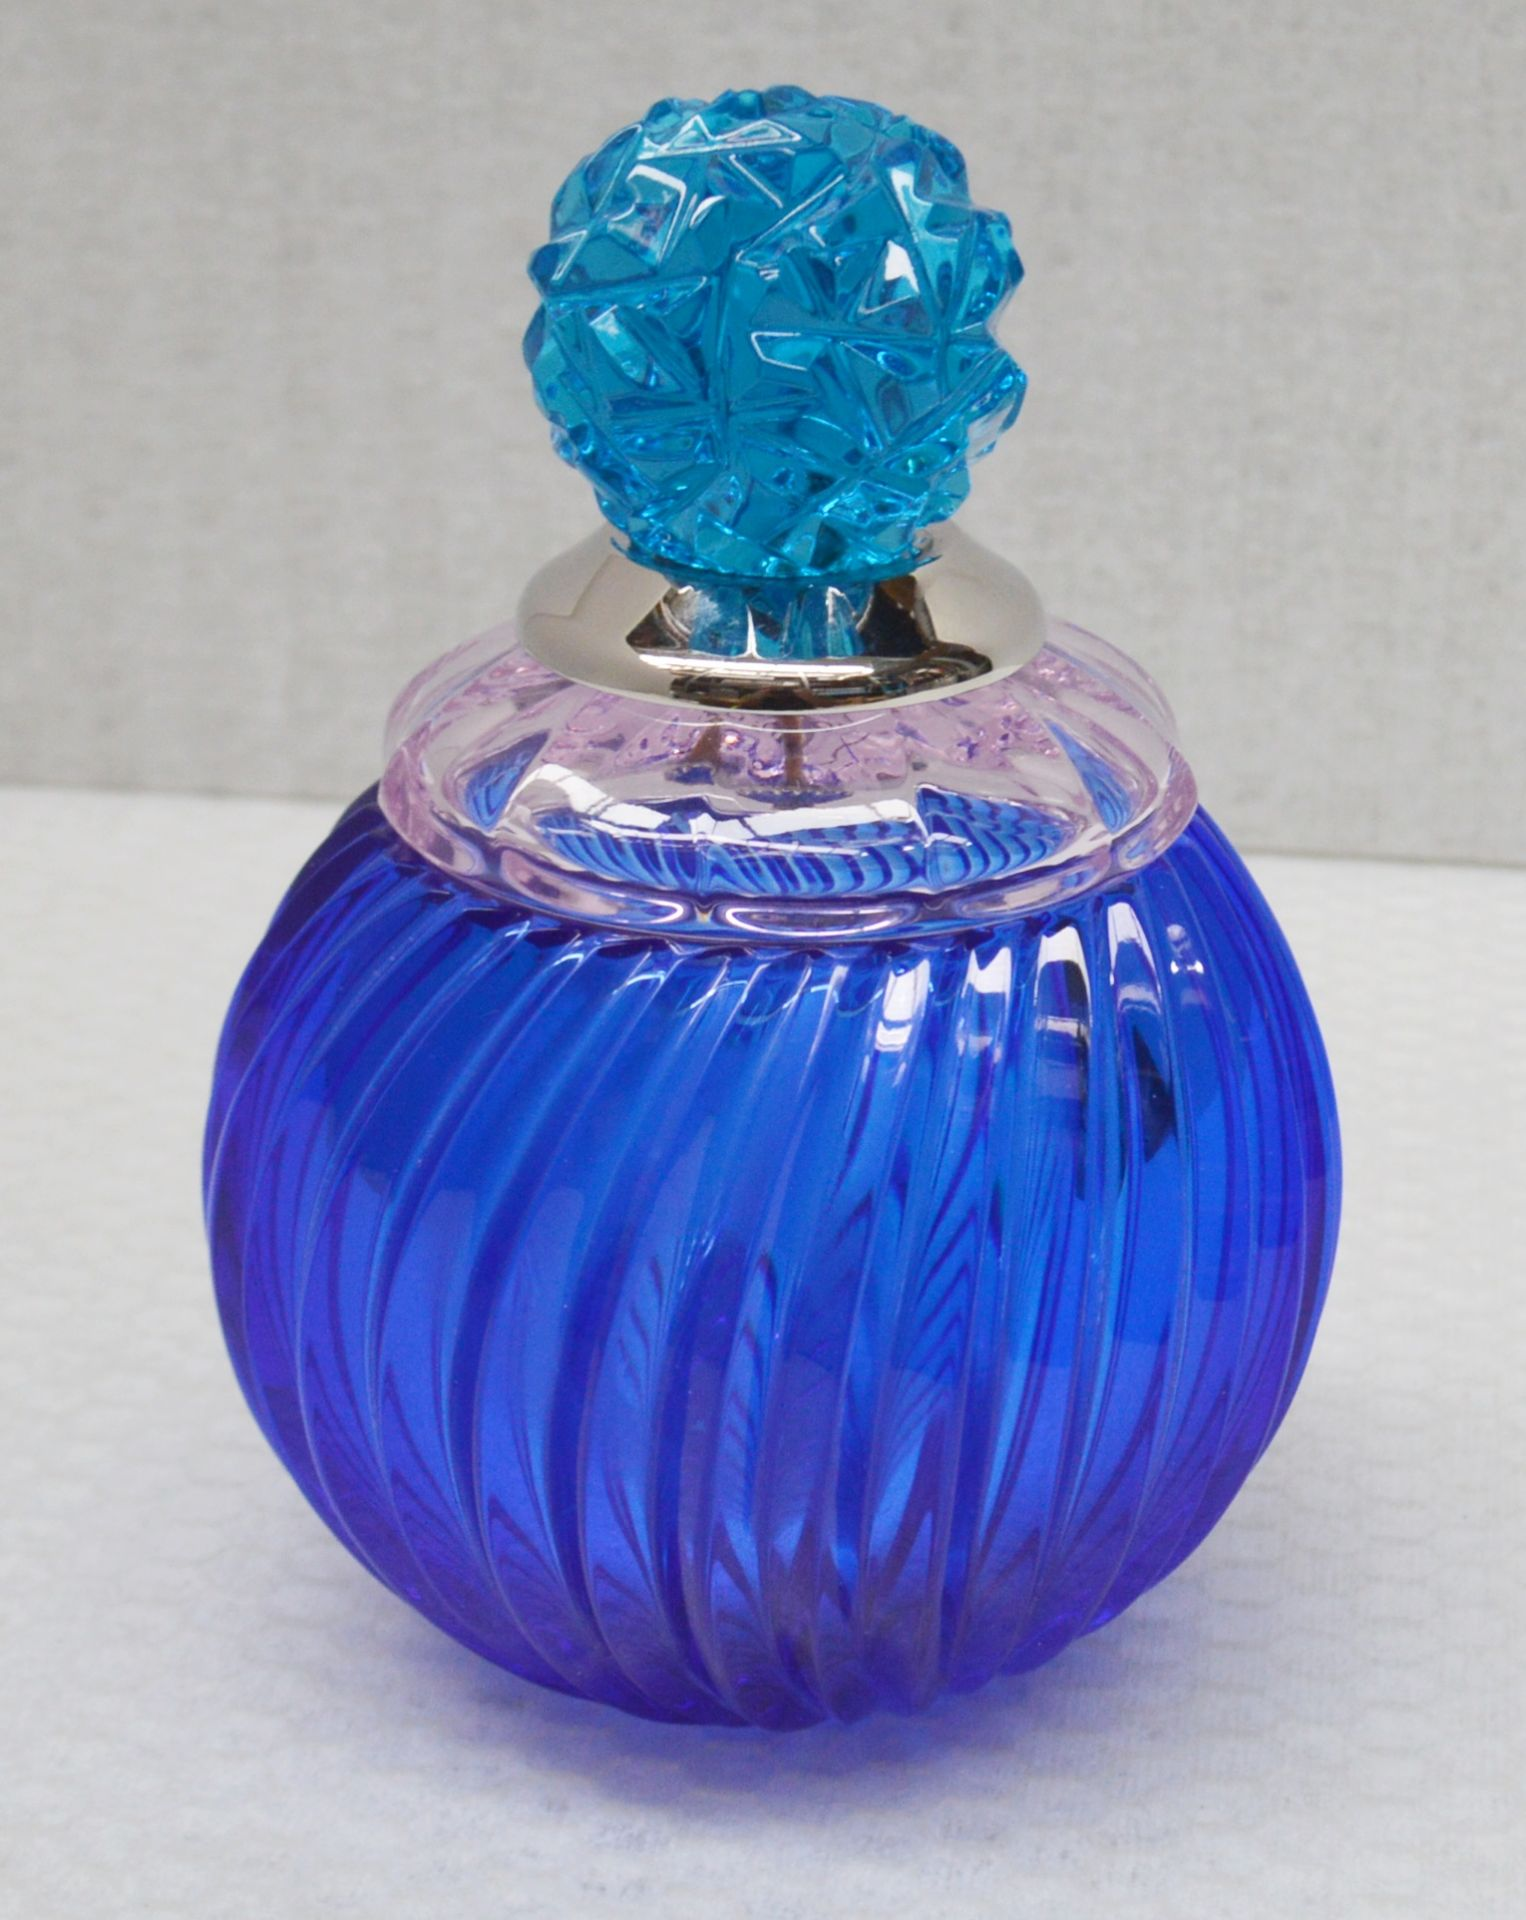 1 x BALDI 'Home Jewels' Italian Hand-crafted Artisan Small Coccinella Jar In Blue And Pink Crystal